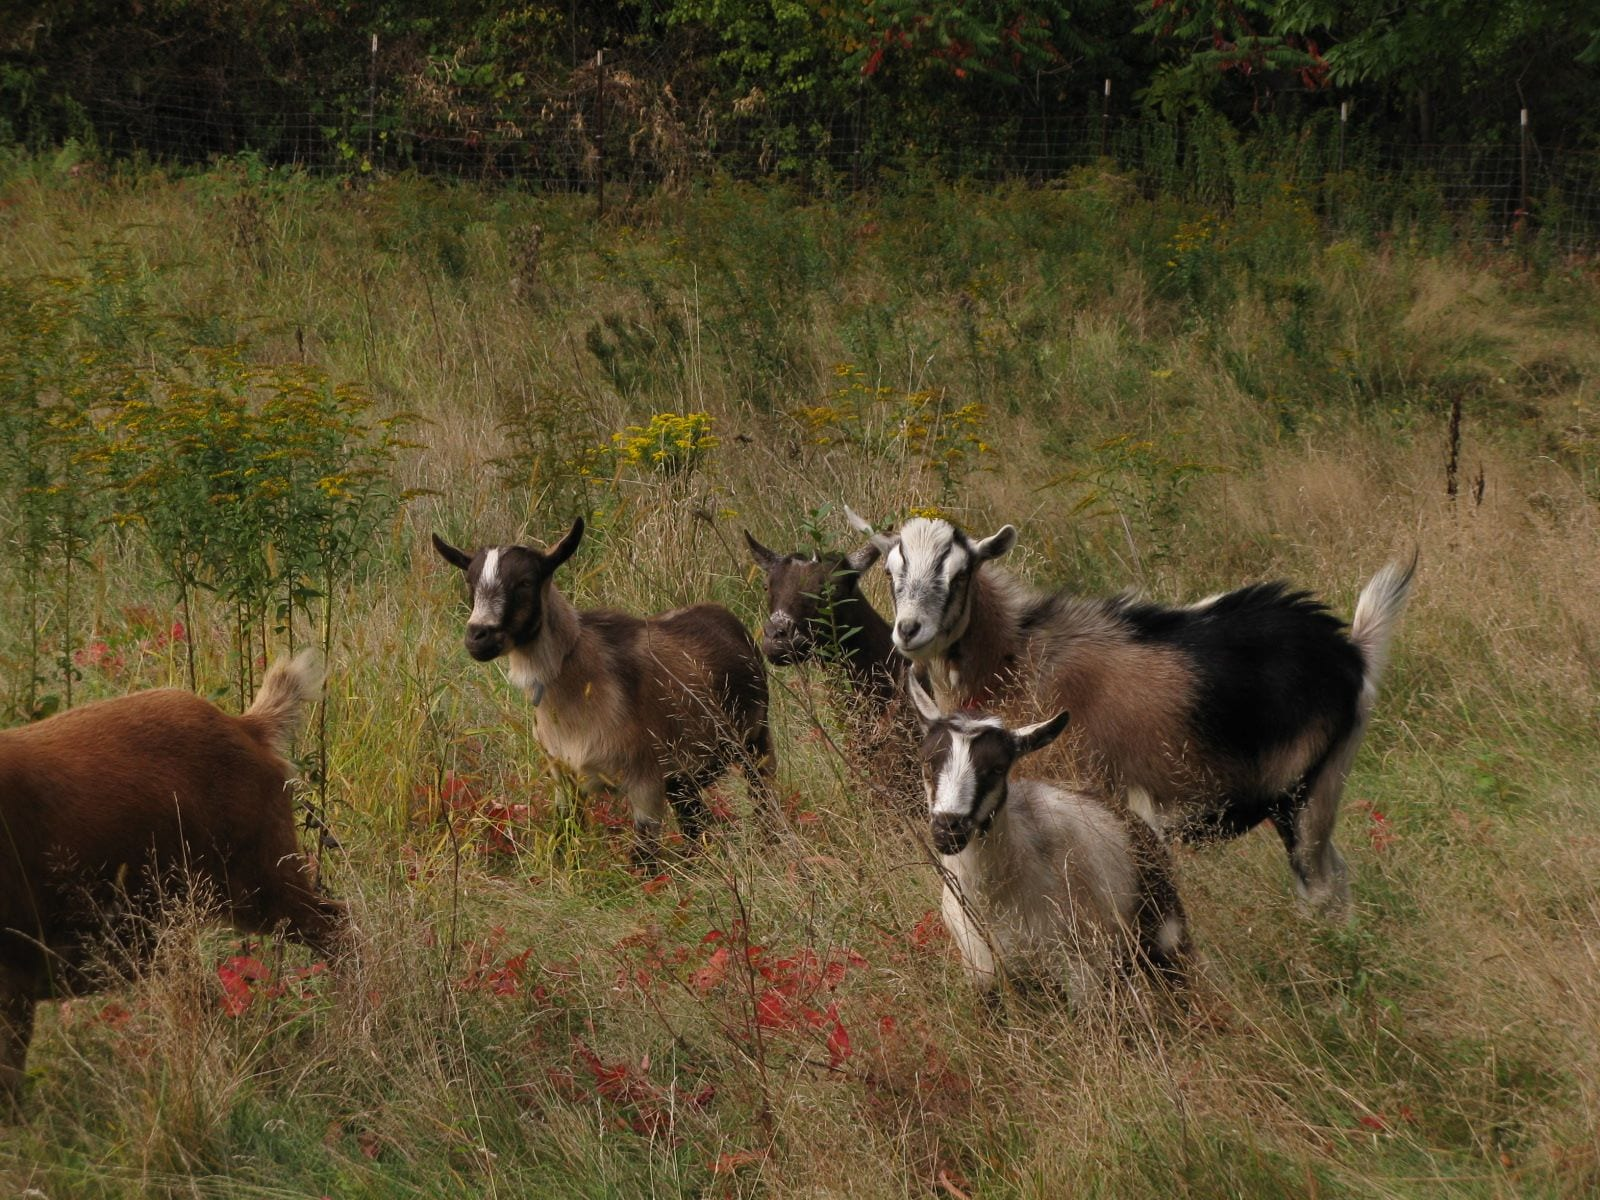 Goats As An Ecological Management Option For Invasive Plants Ecological Landscape Alliance